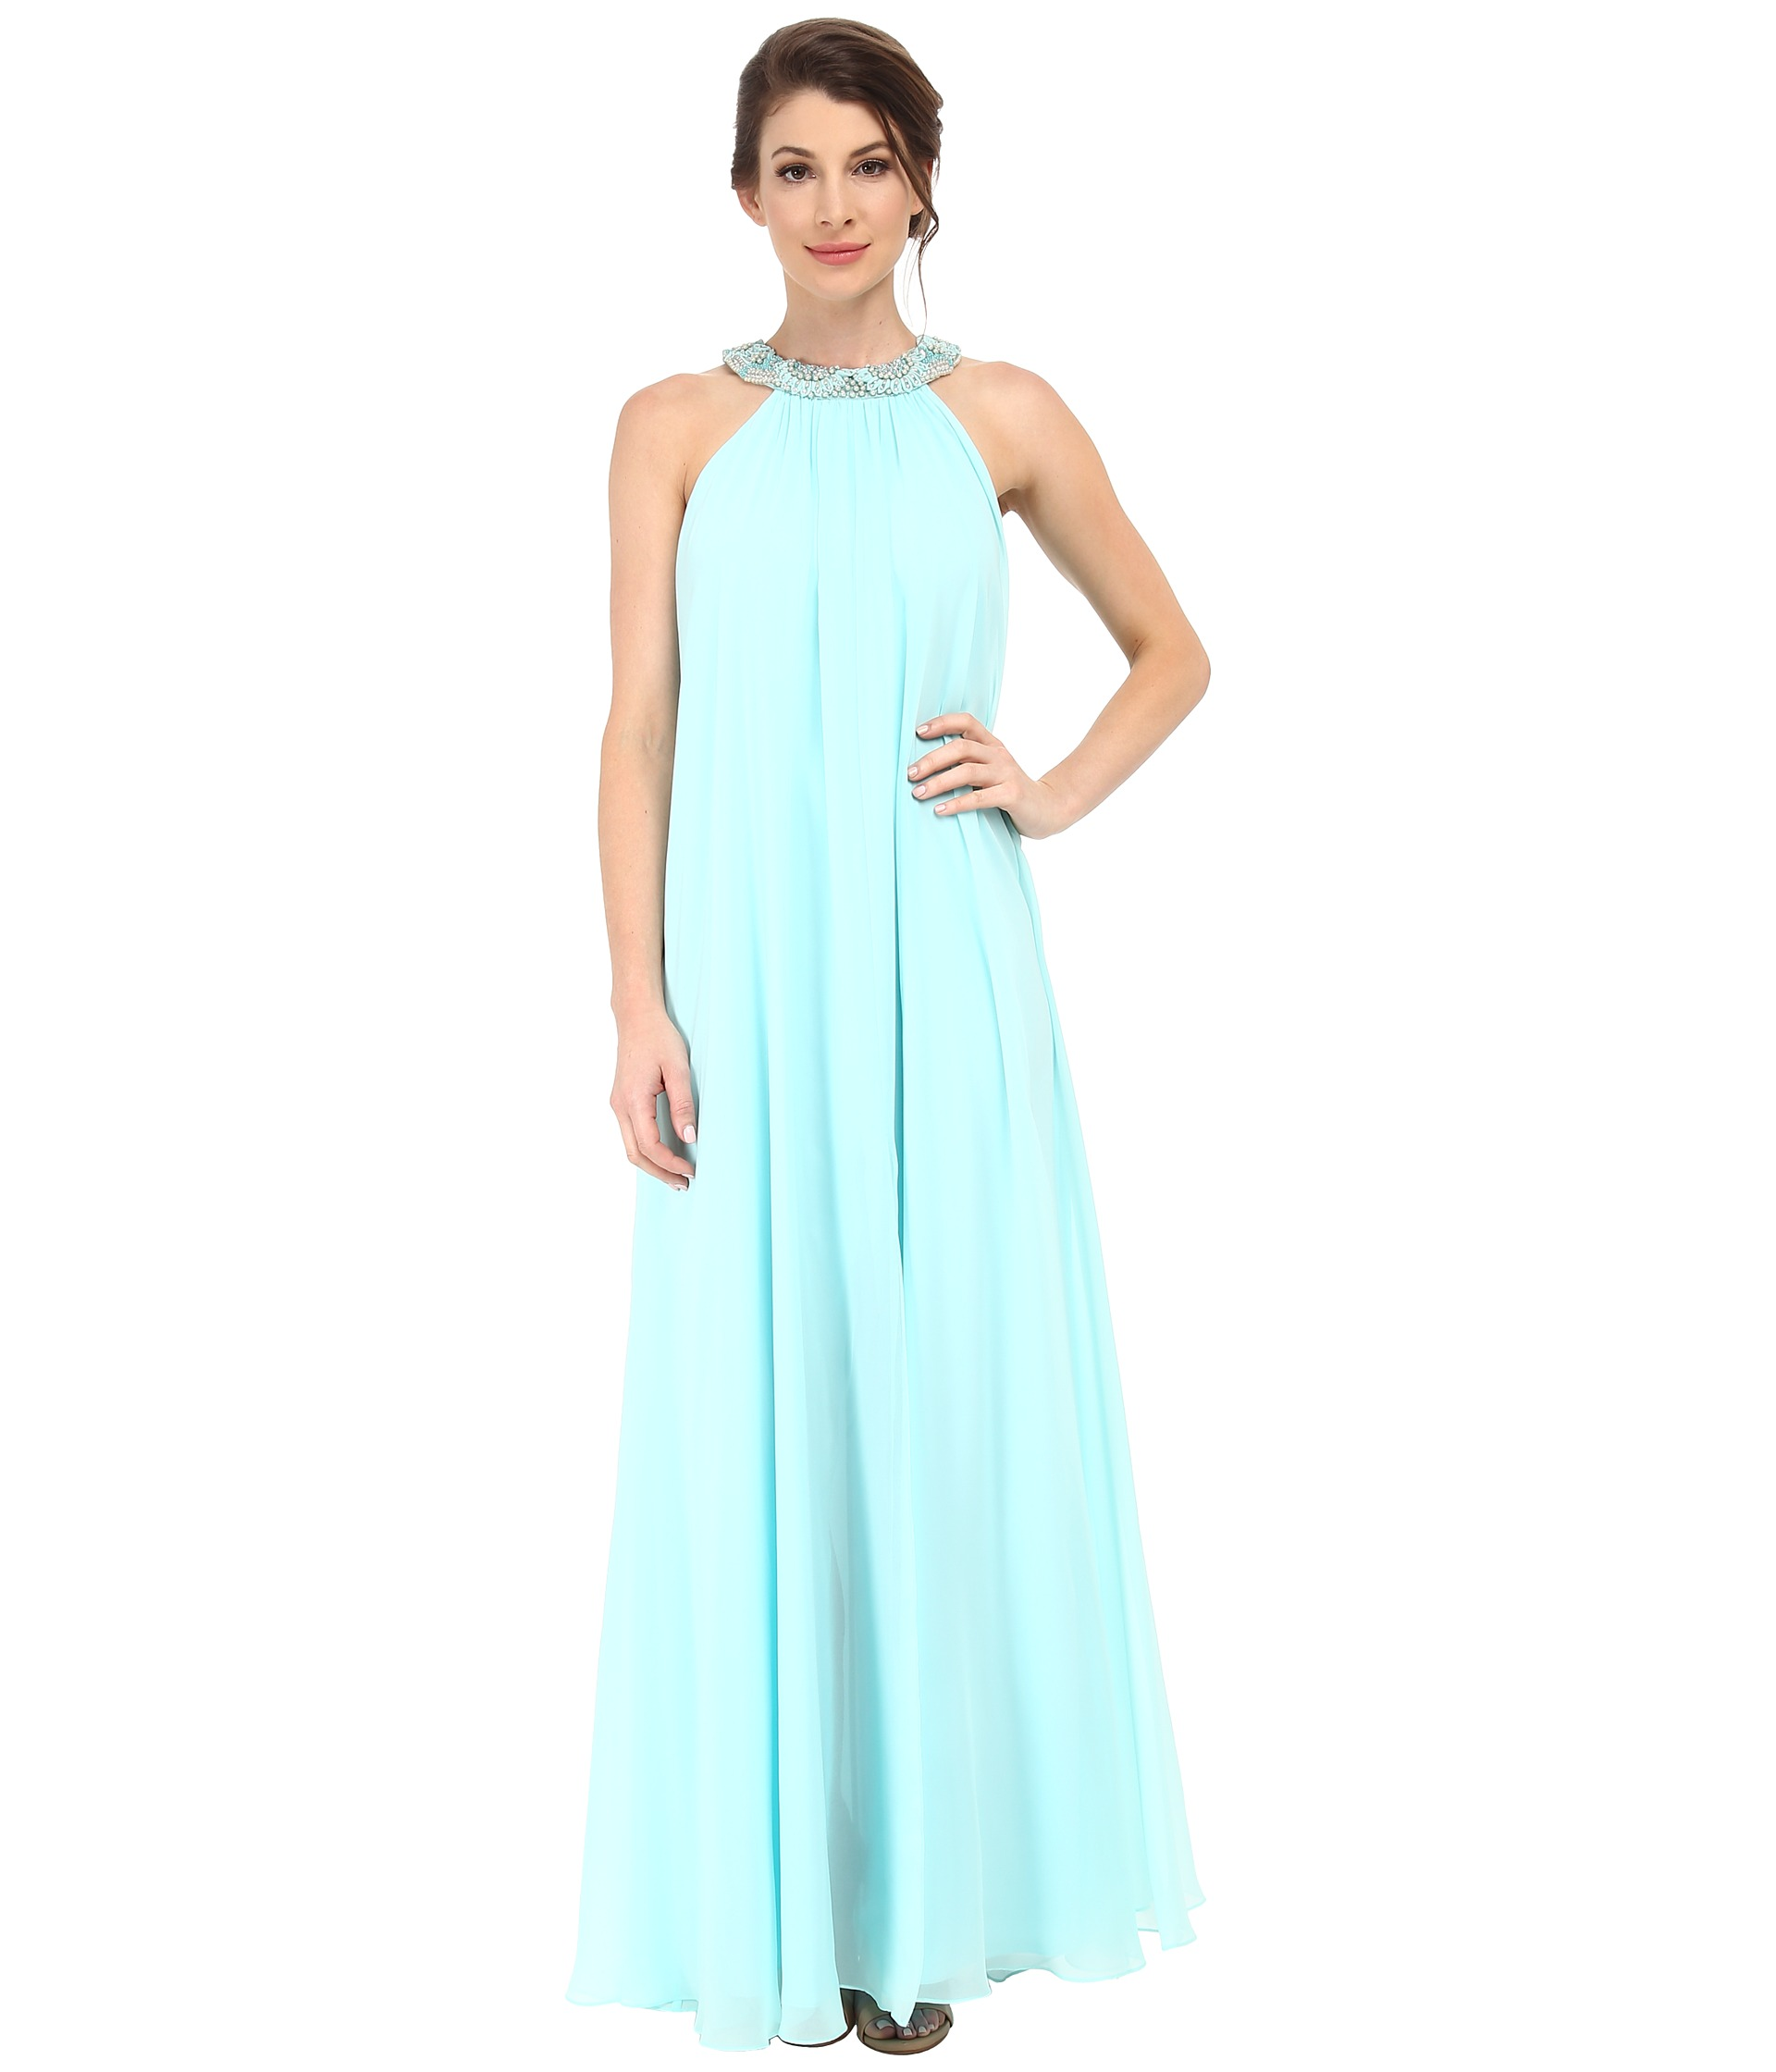 Plus Size Prom Dresses - Page 458 of 509 - Short Prom Dresses Boohoo